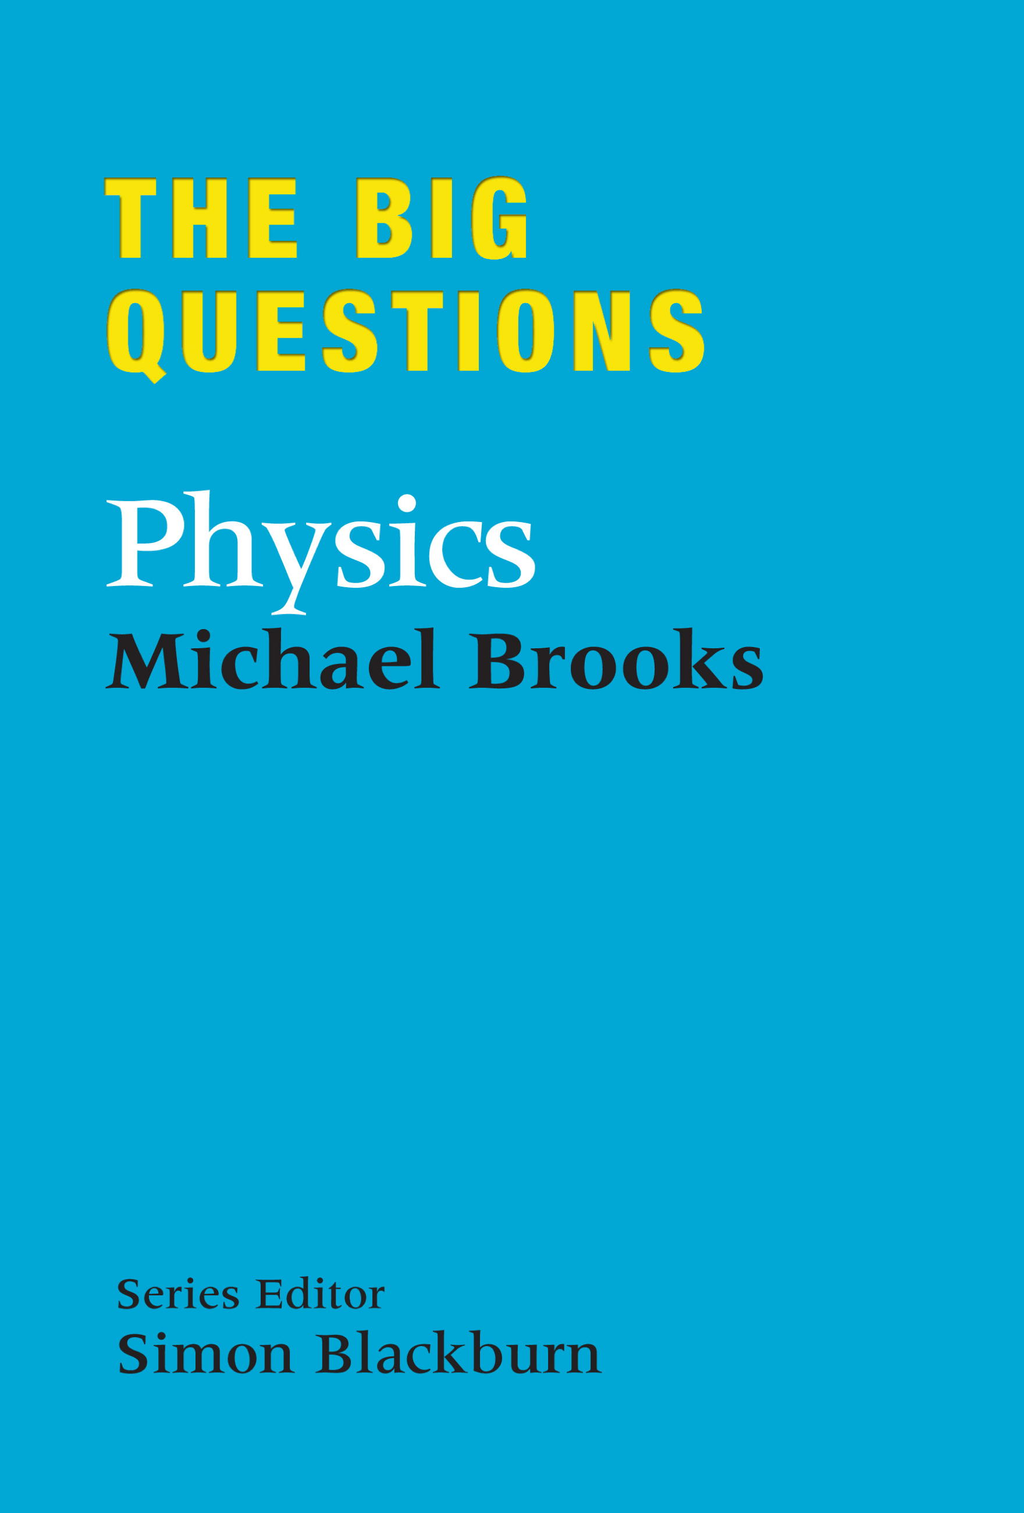 The Big Questions: Physics